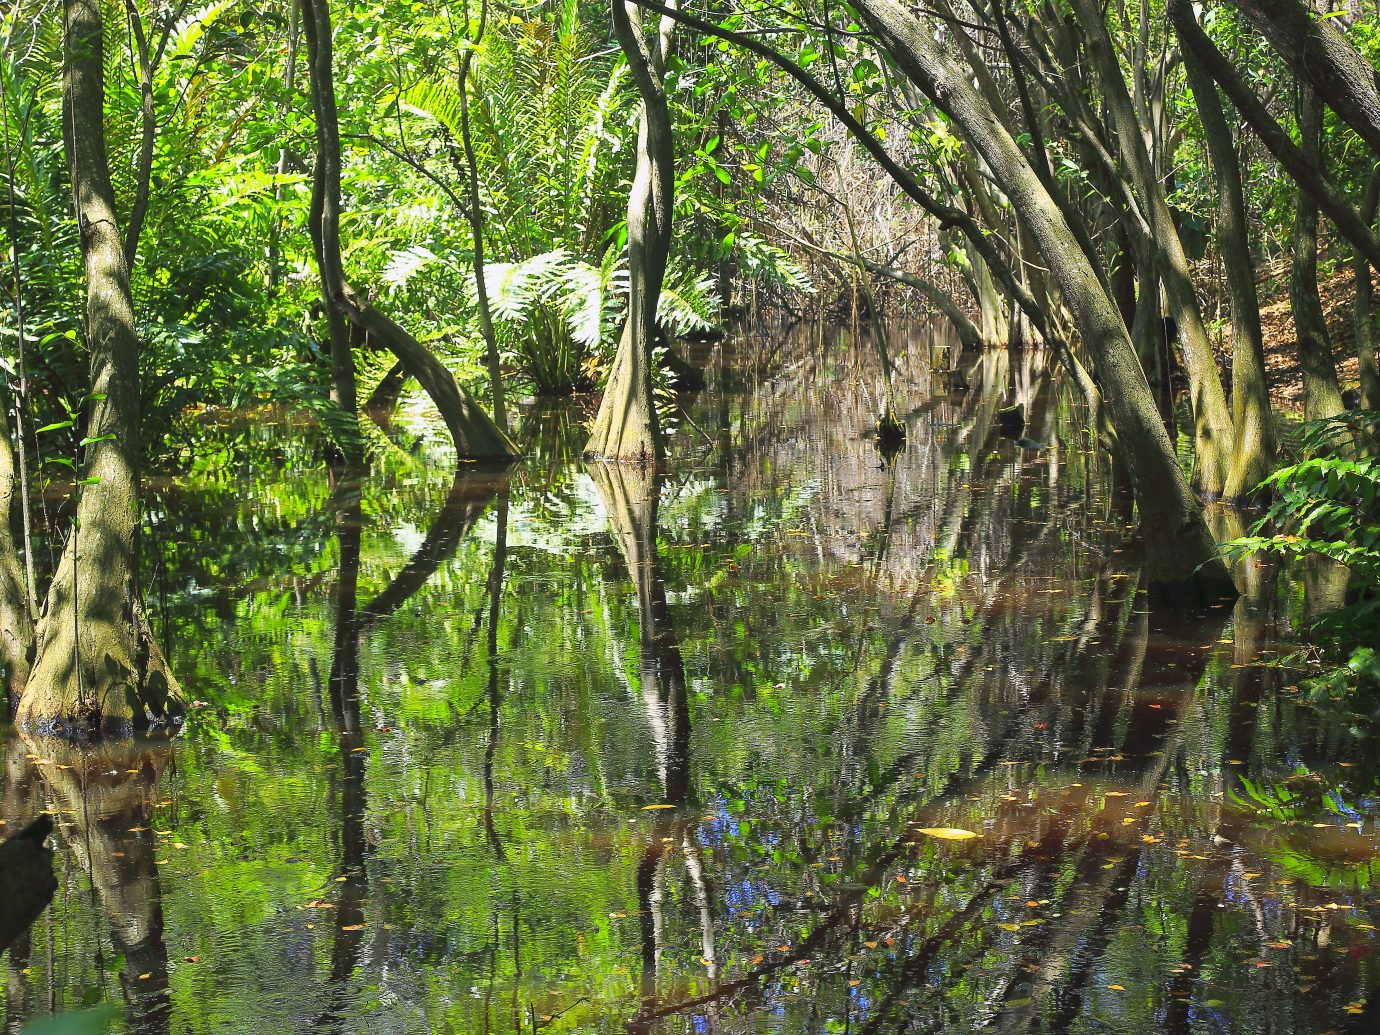 Swamp Wetland Mangrove tropical rainforest, tree trunks and roots Landscape